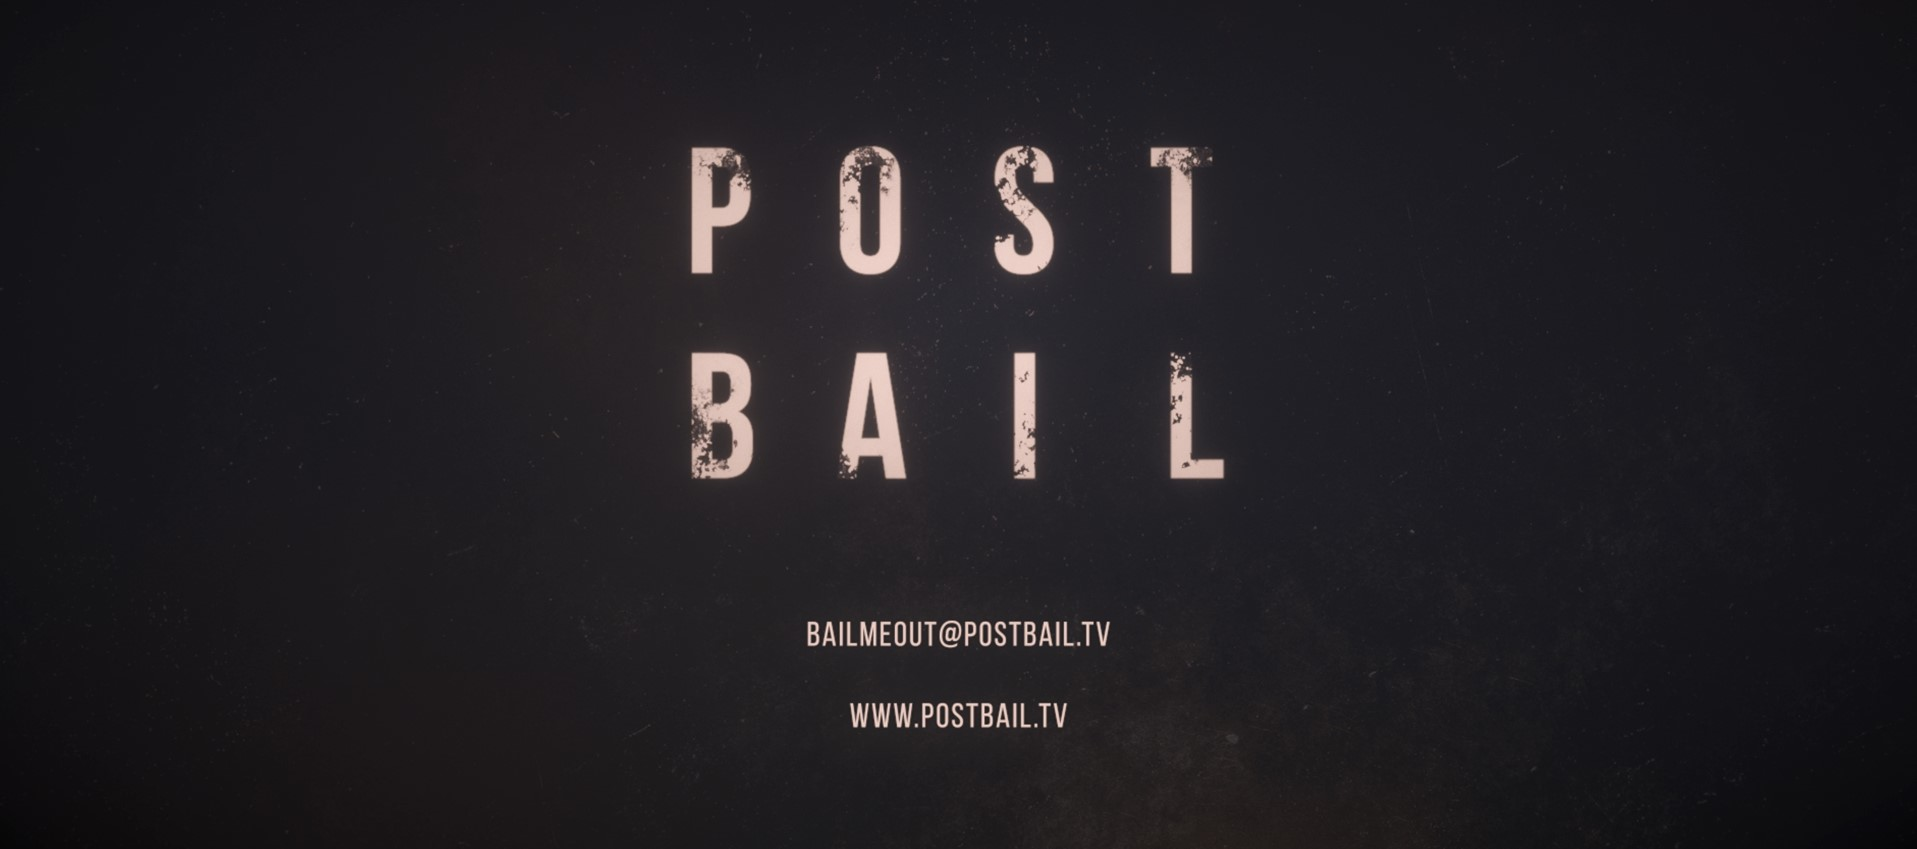 Postbail.tv